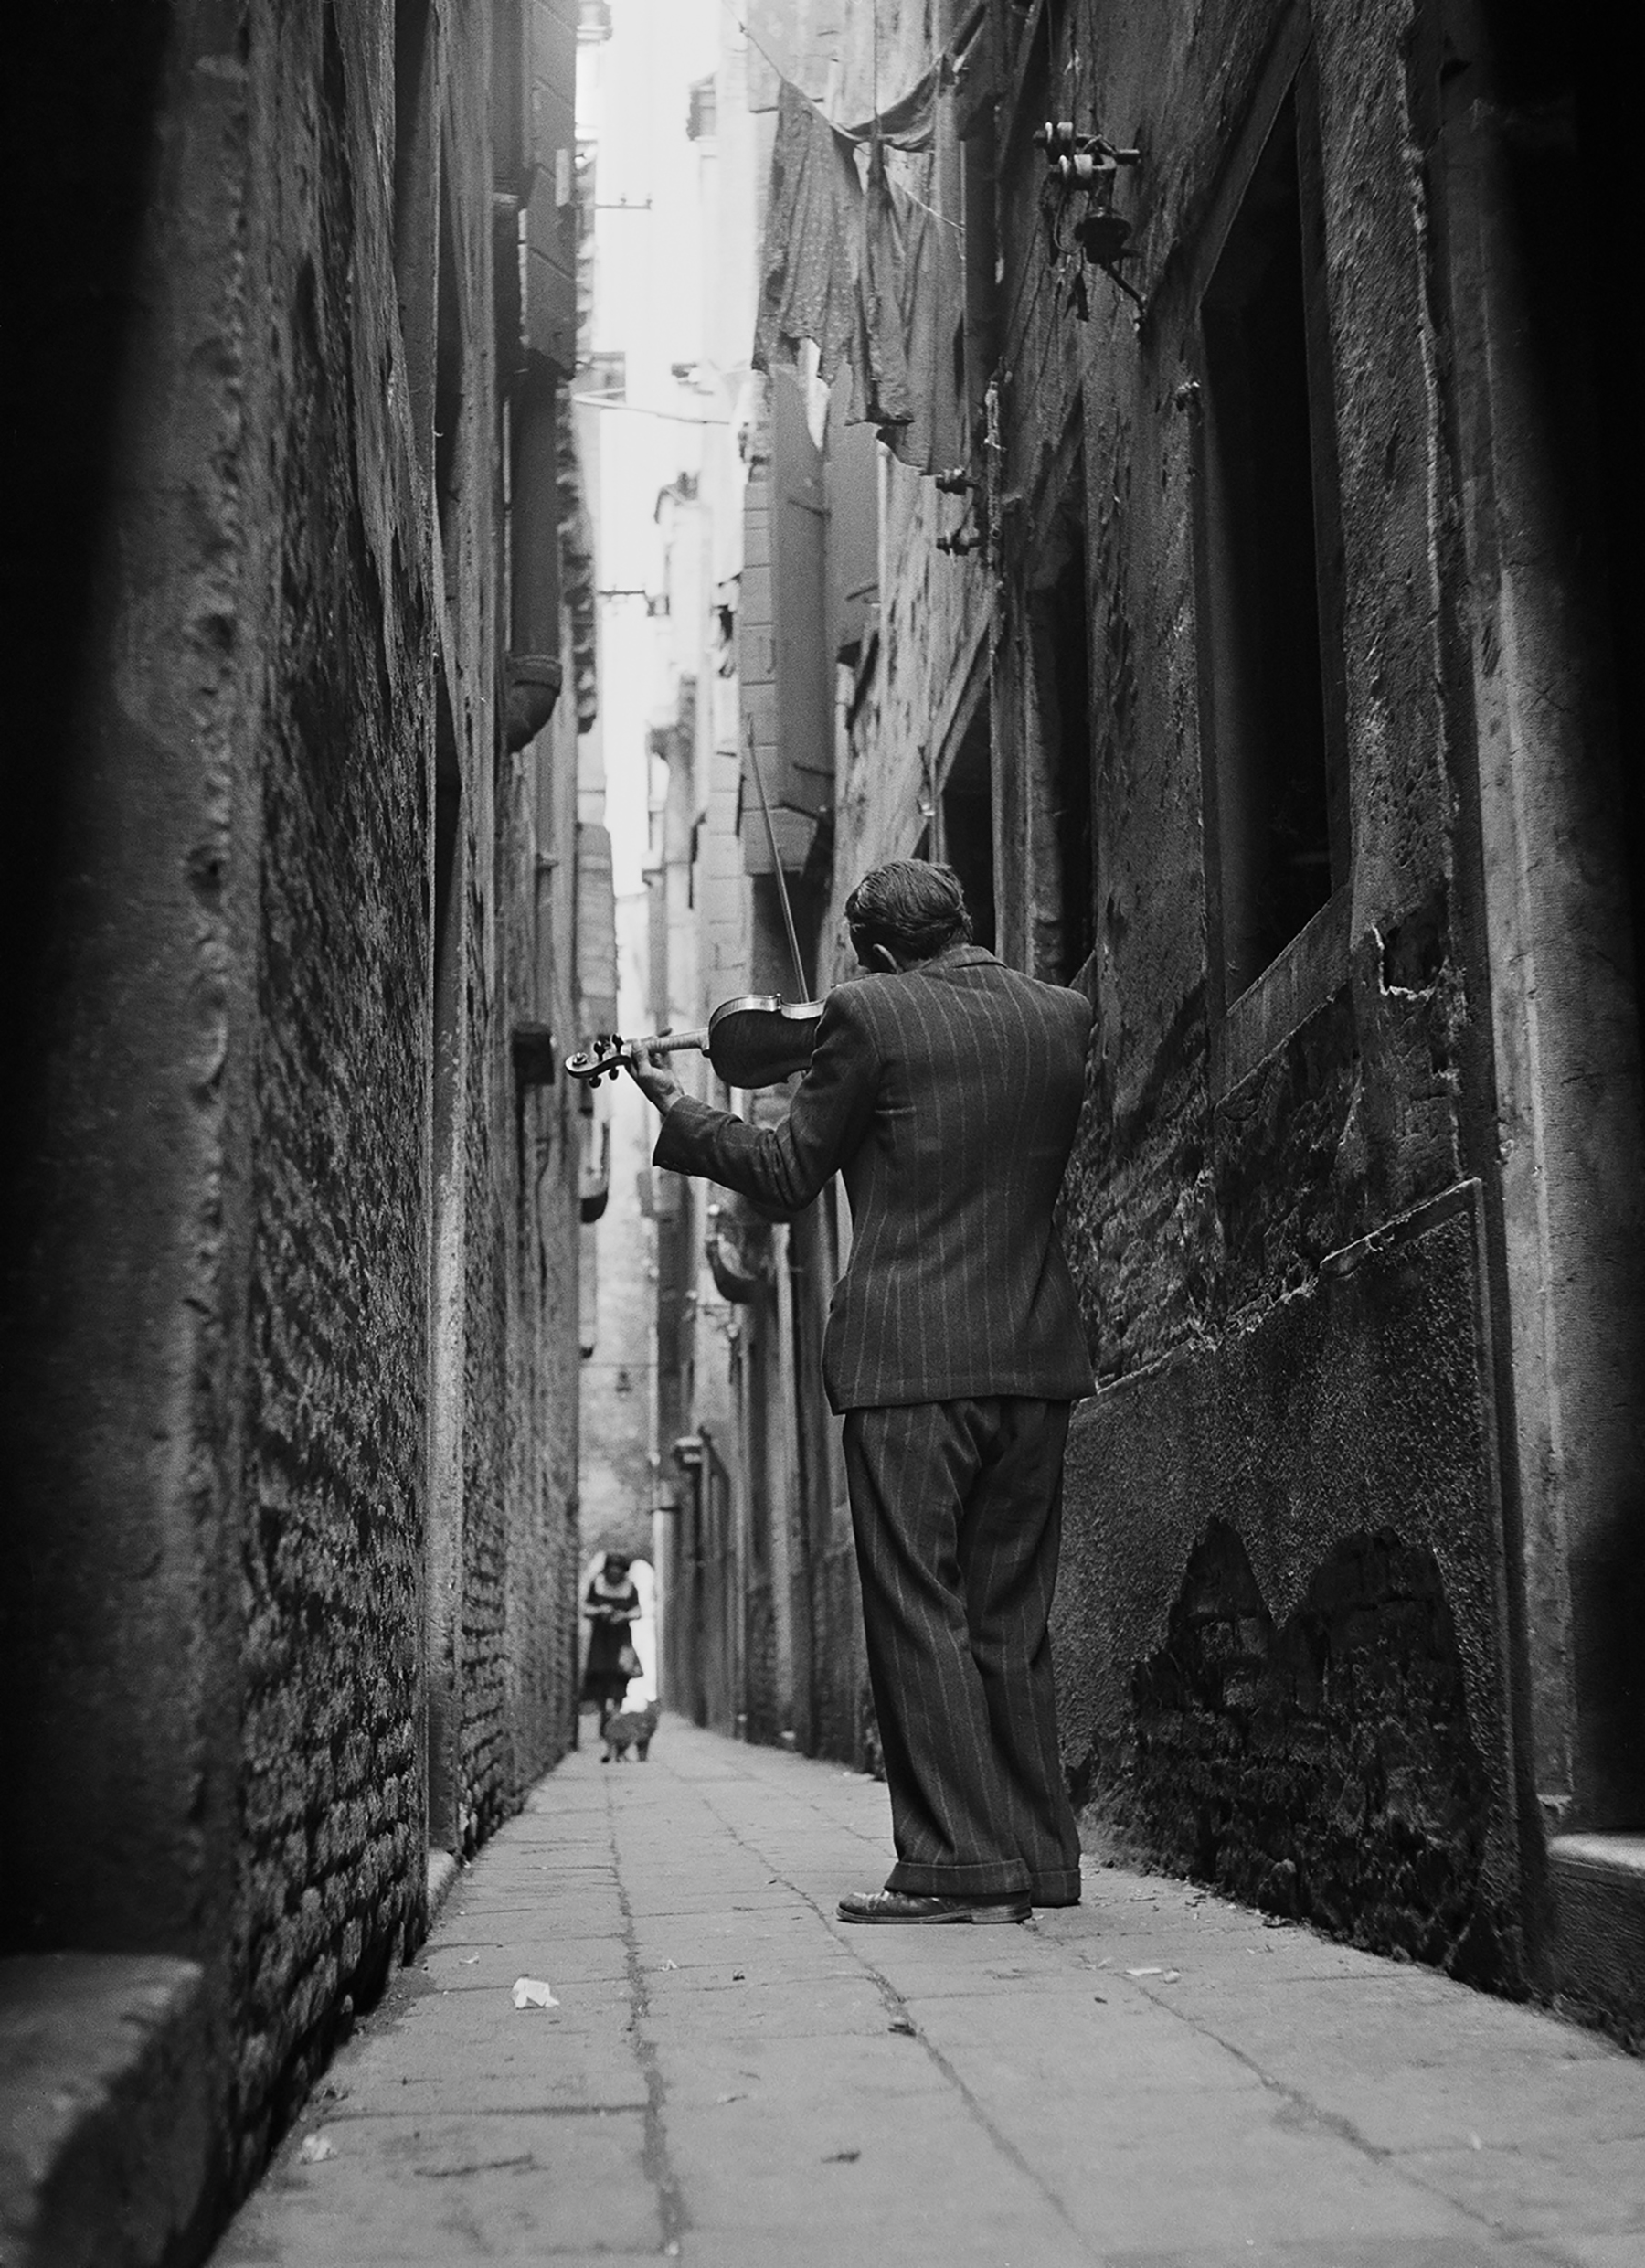 Tony Vaccaro black and white photograph of a violinist on street in in Venice, Italy, 1947